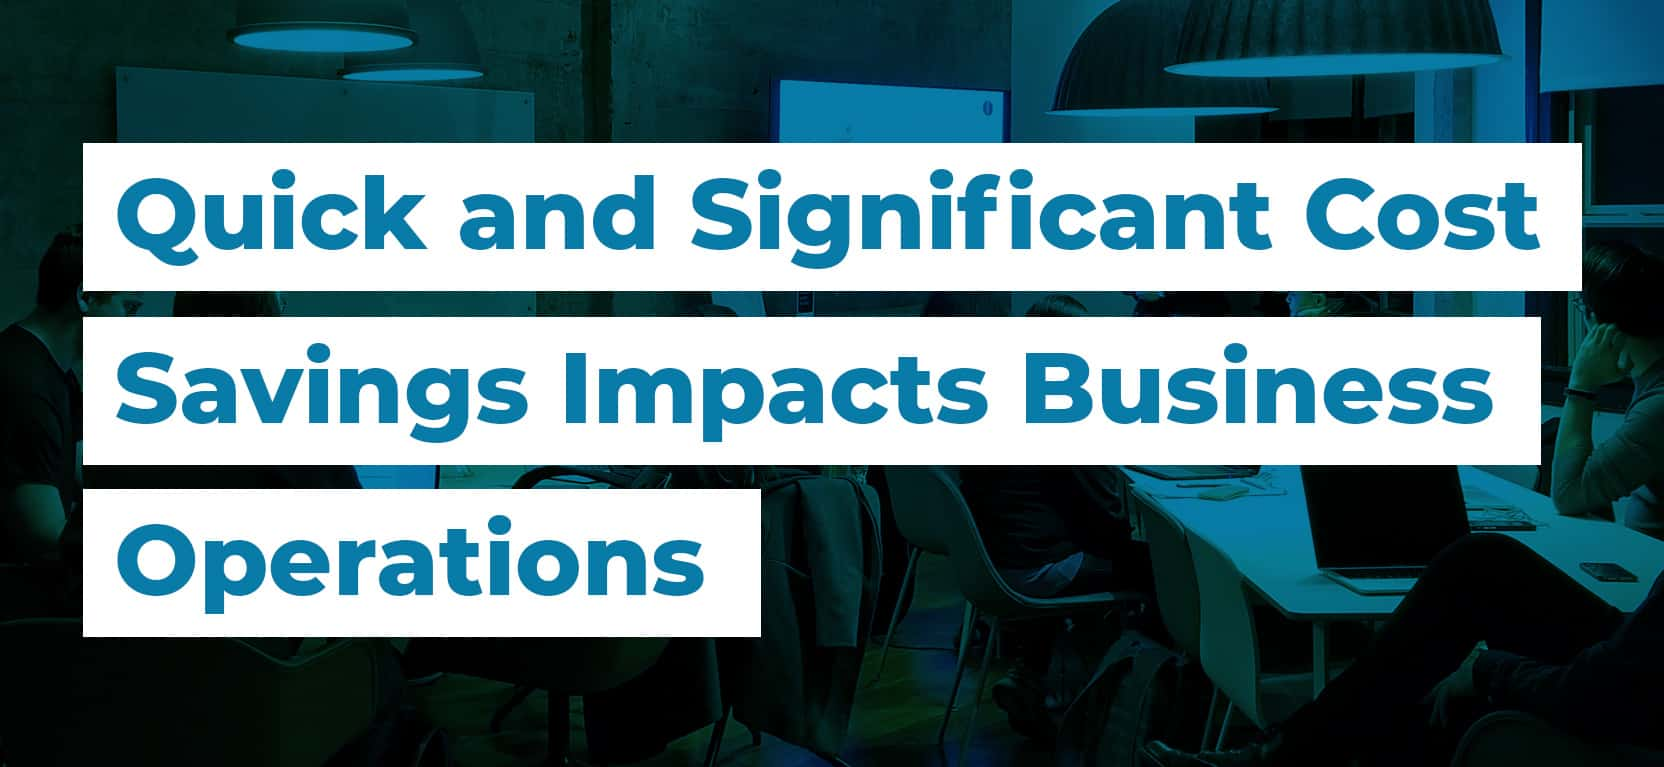 39 Quick and Significant Cost Savings Impacts Business Operations2